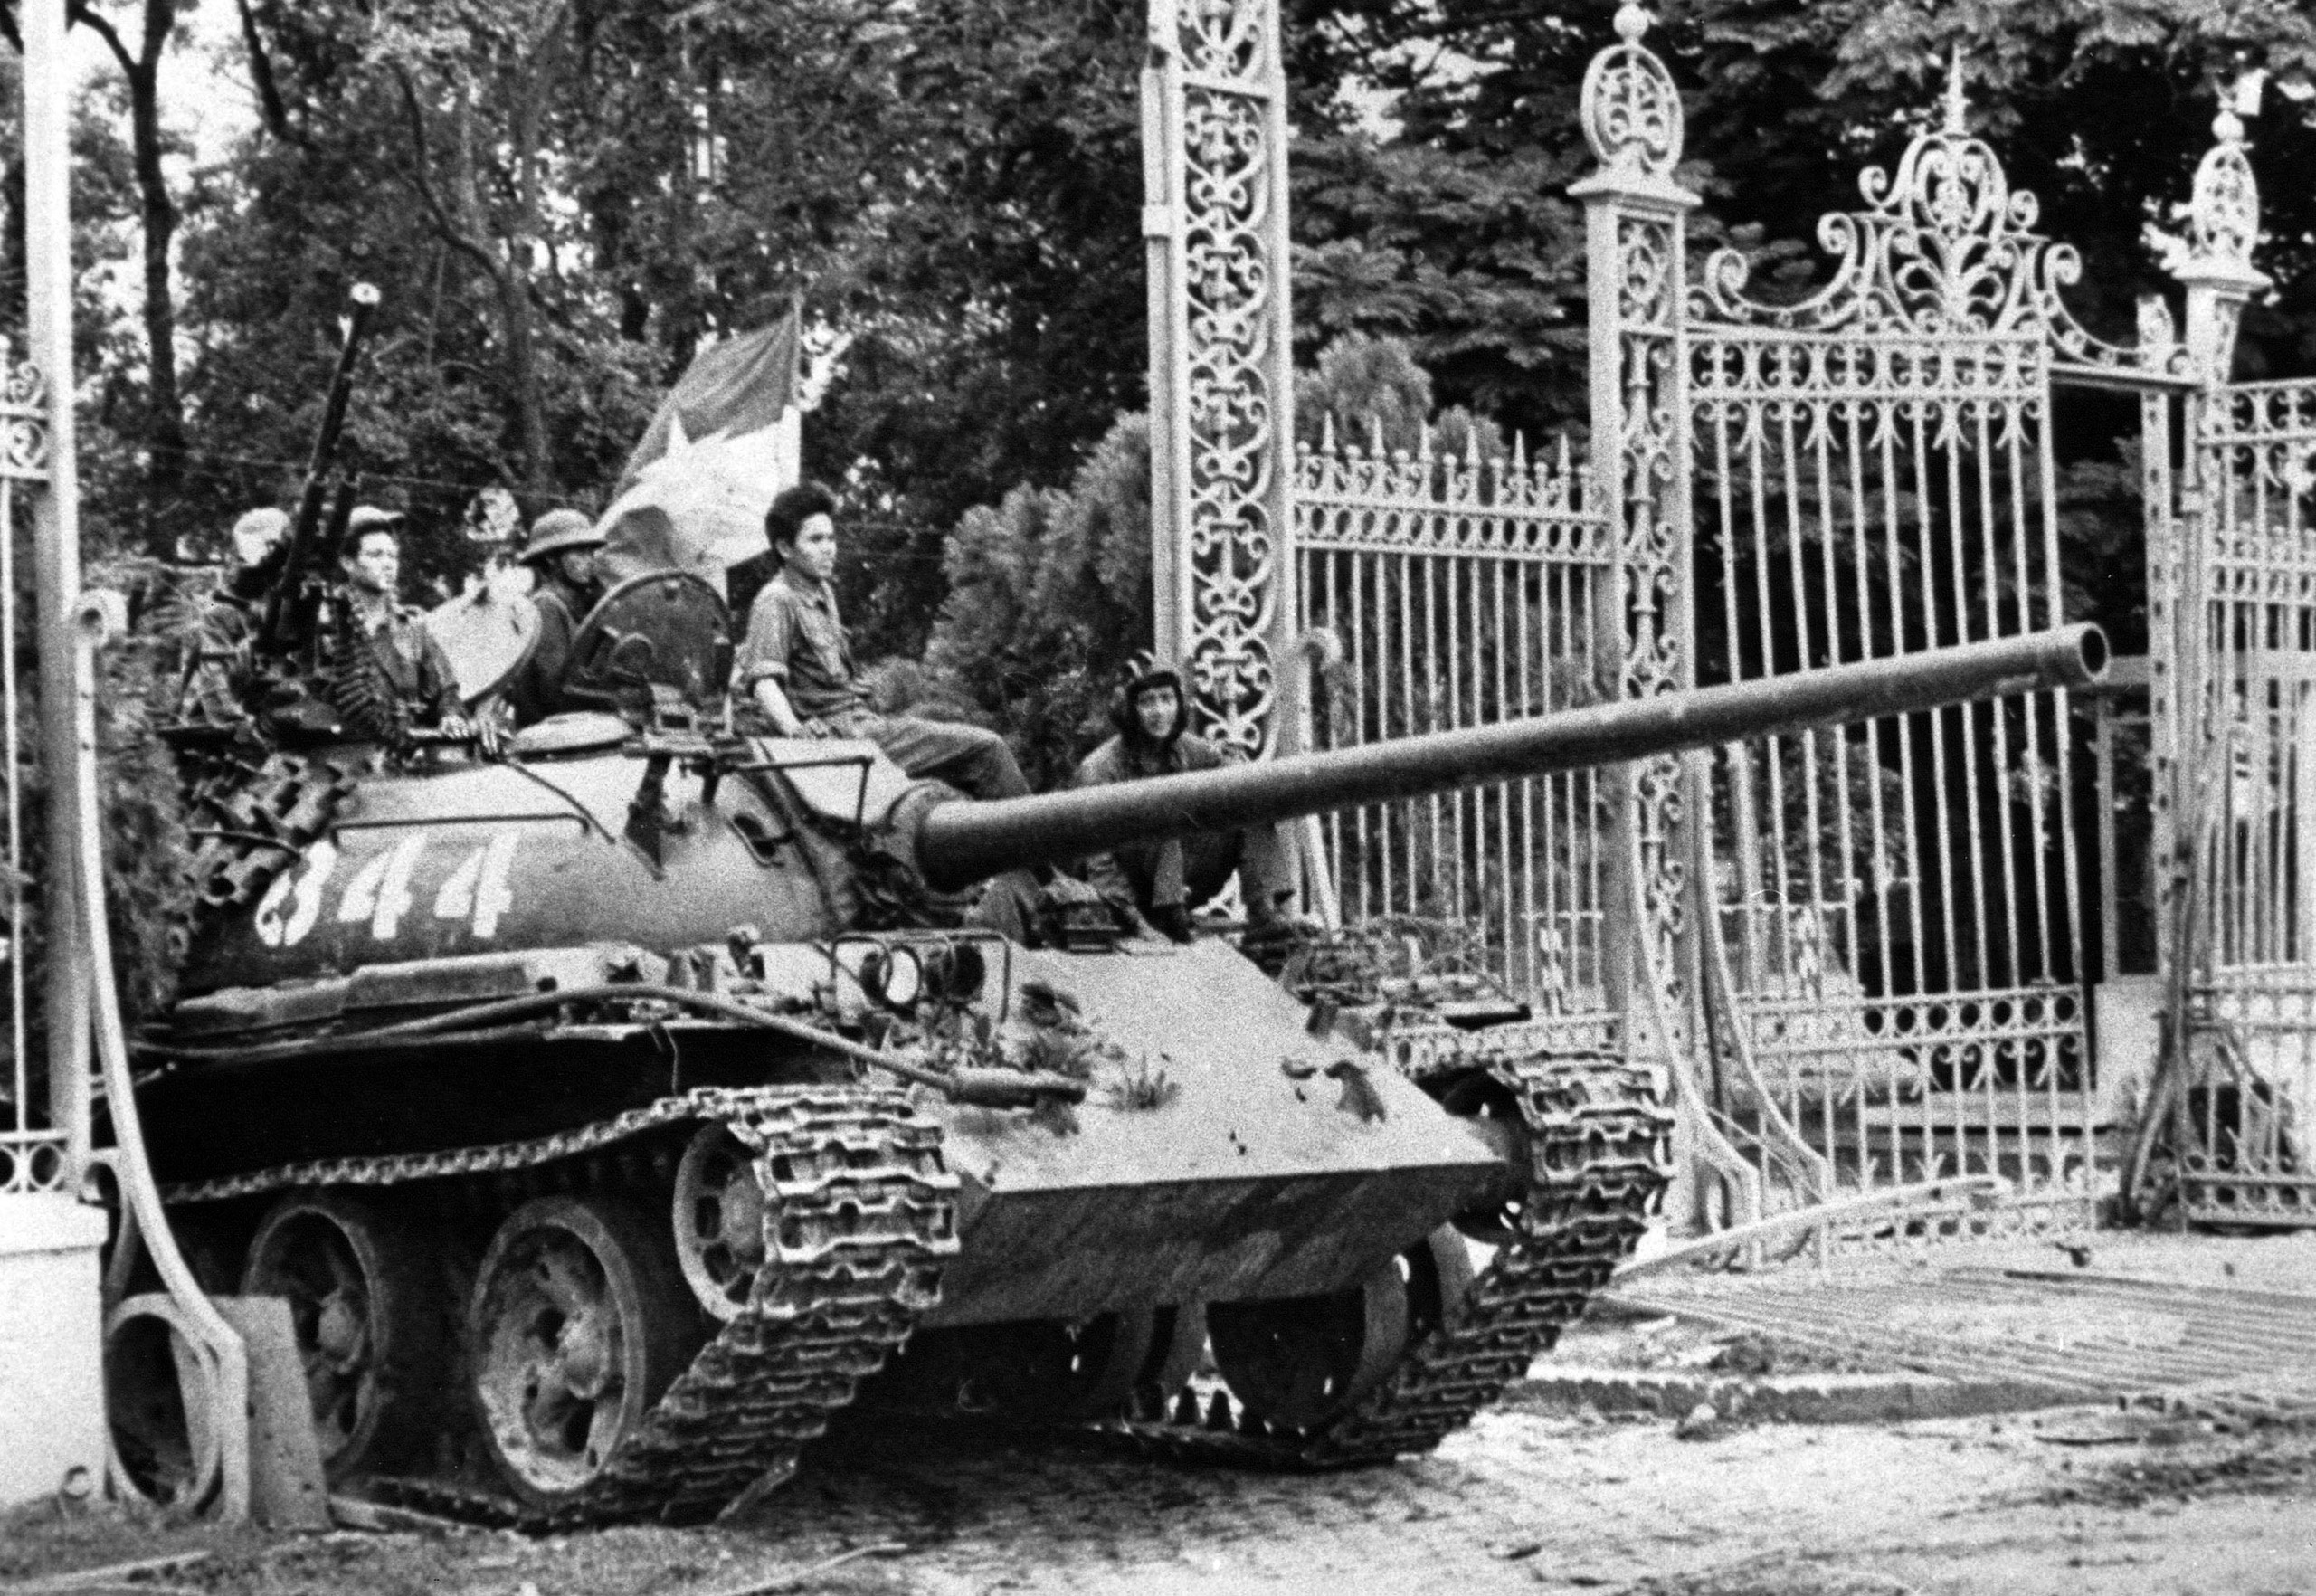 A North Vietnamese tank rolls through the gate of the Presidential Palace in Saigon, signifying the fall of South Vietnam.